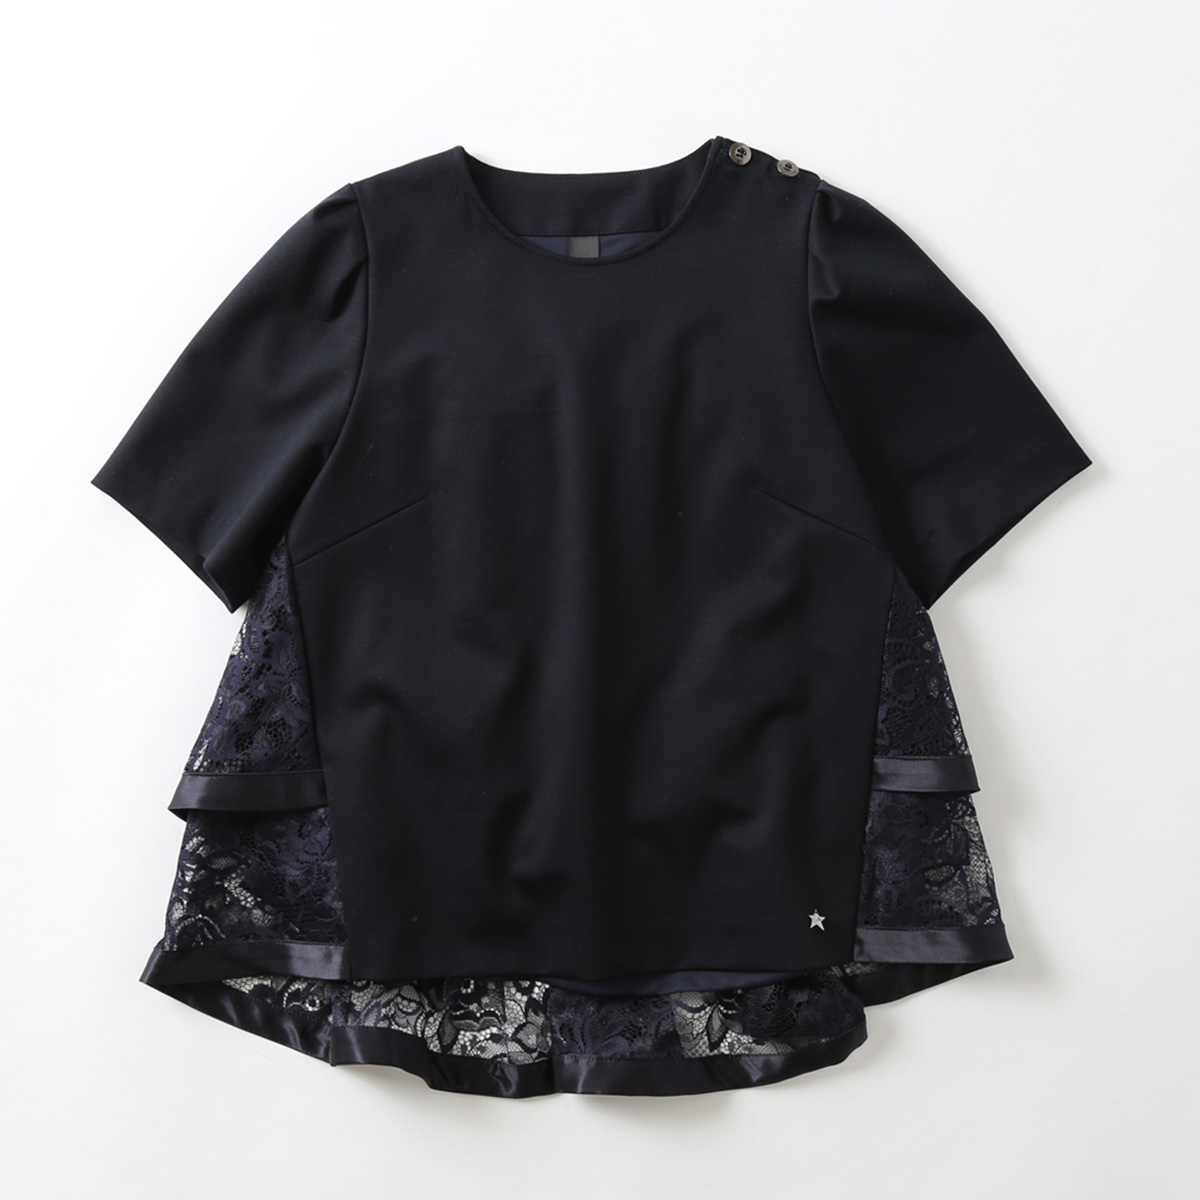 『Dress knit』 Back Tiered Lace Blouse【3月末から4月上旬お届け予定】画像